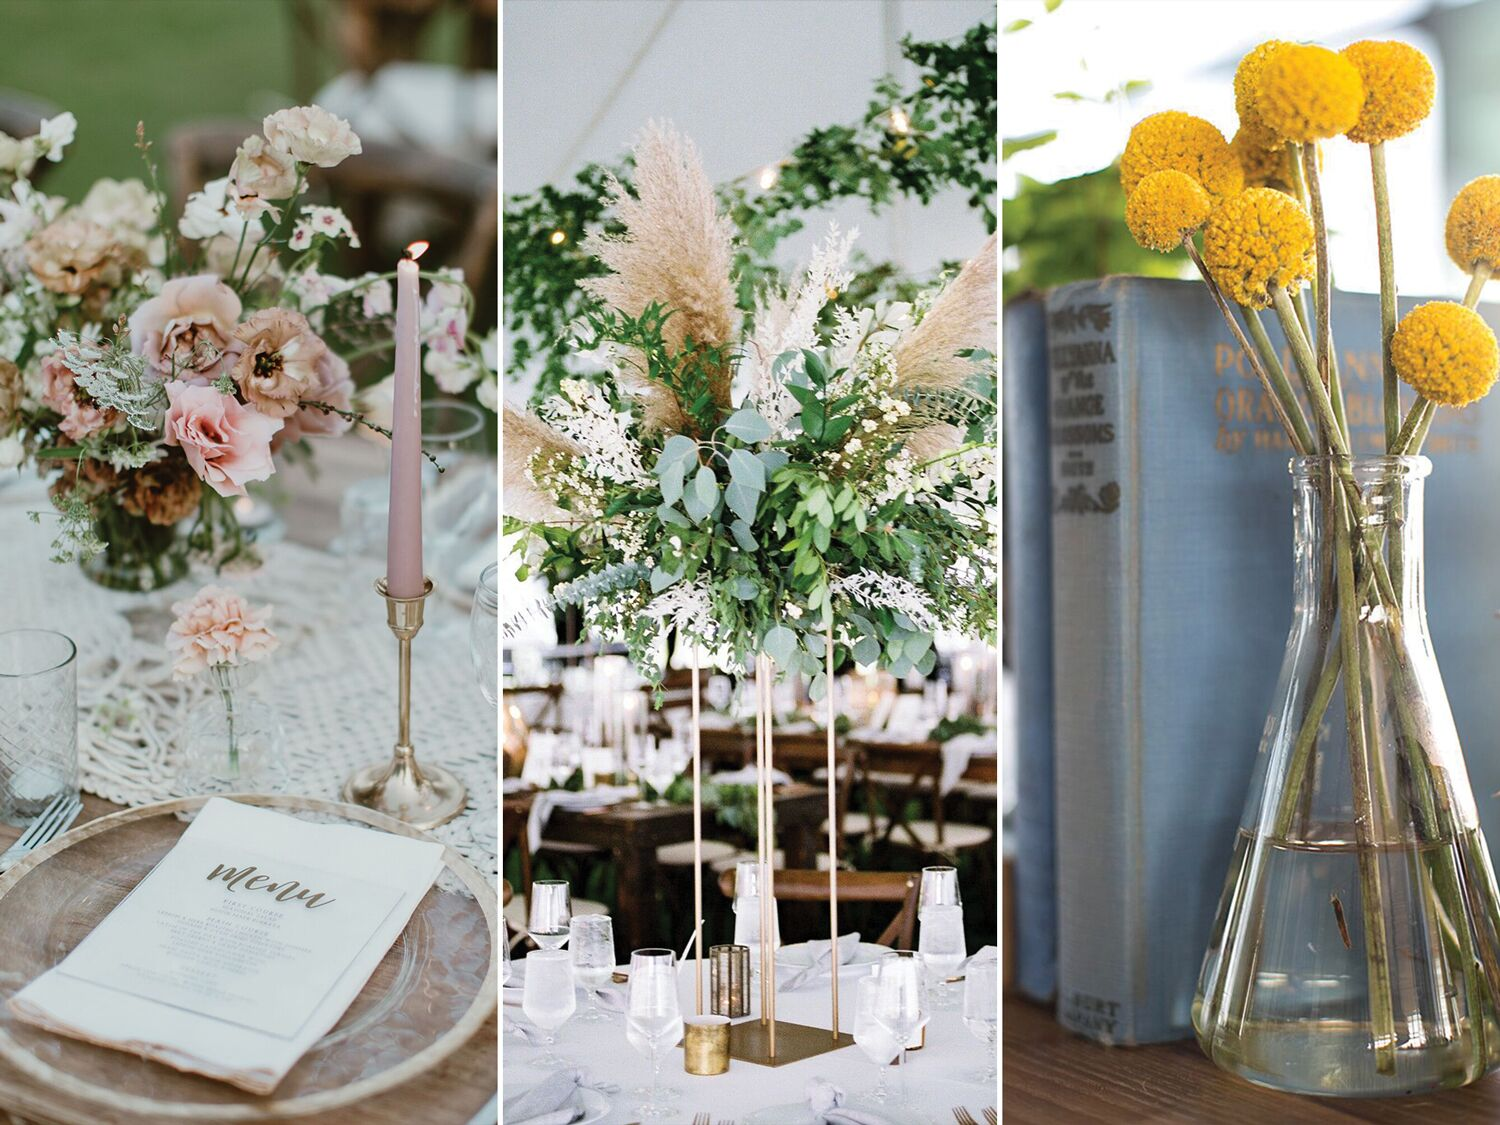 57 Wedding Centerpiece Ideas That Are Trending In 2020